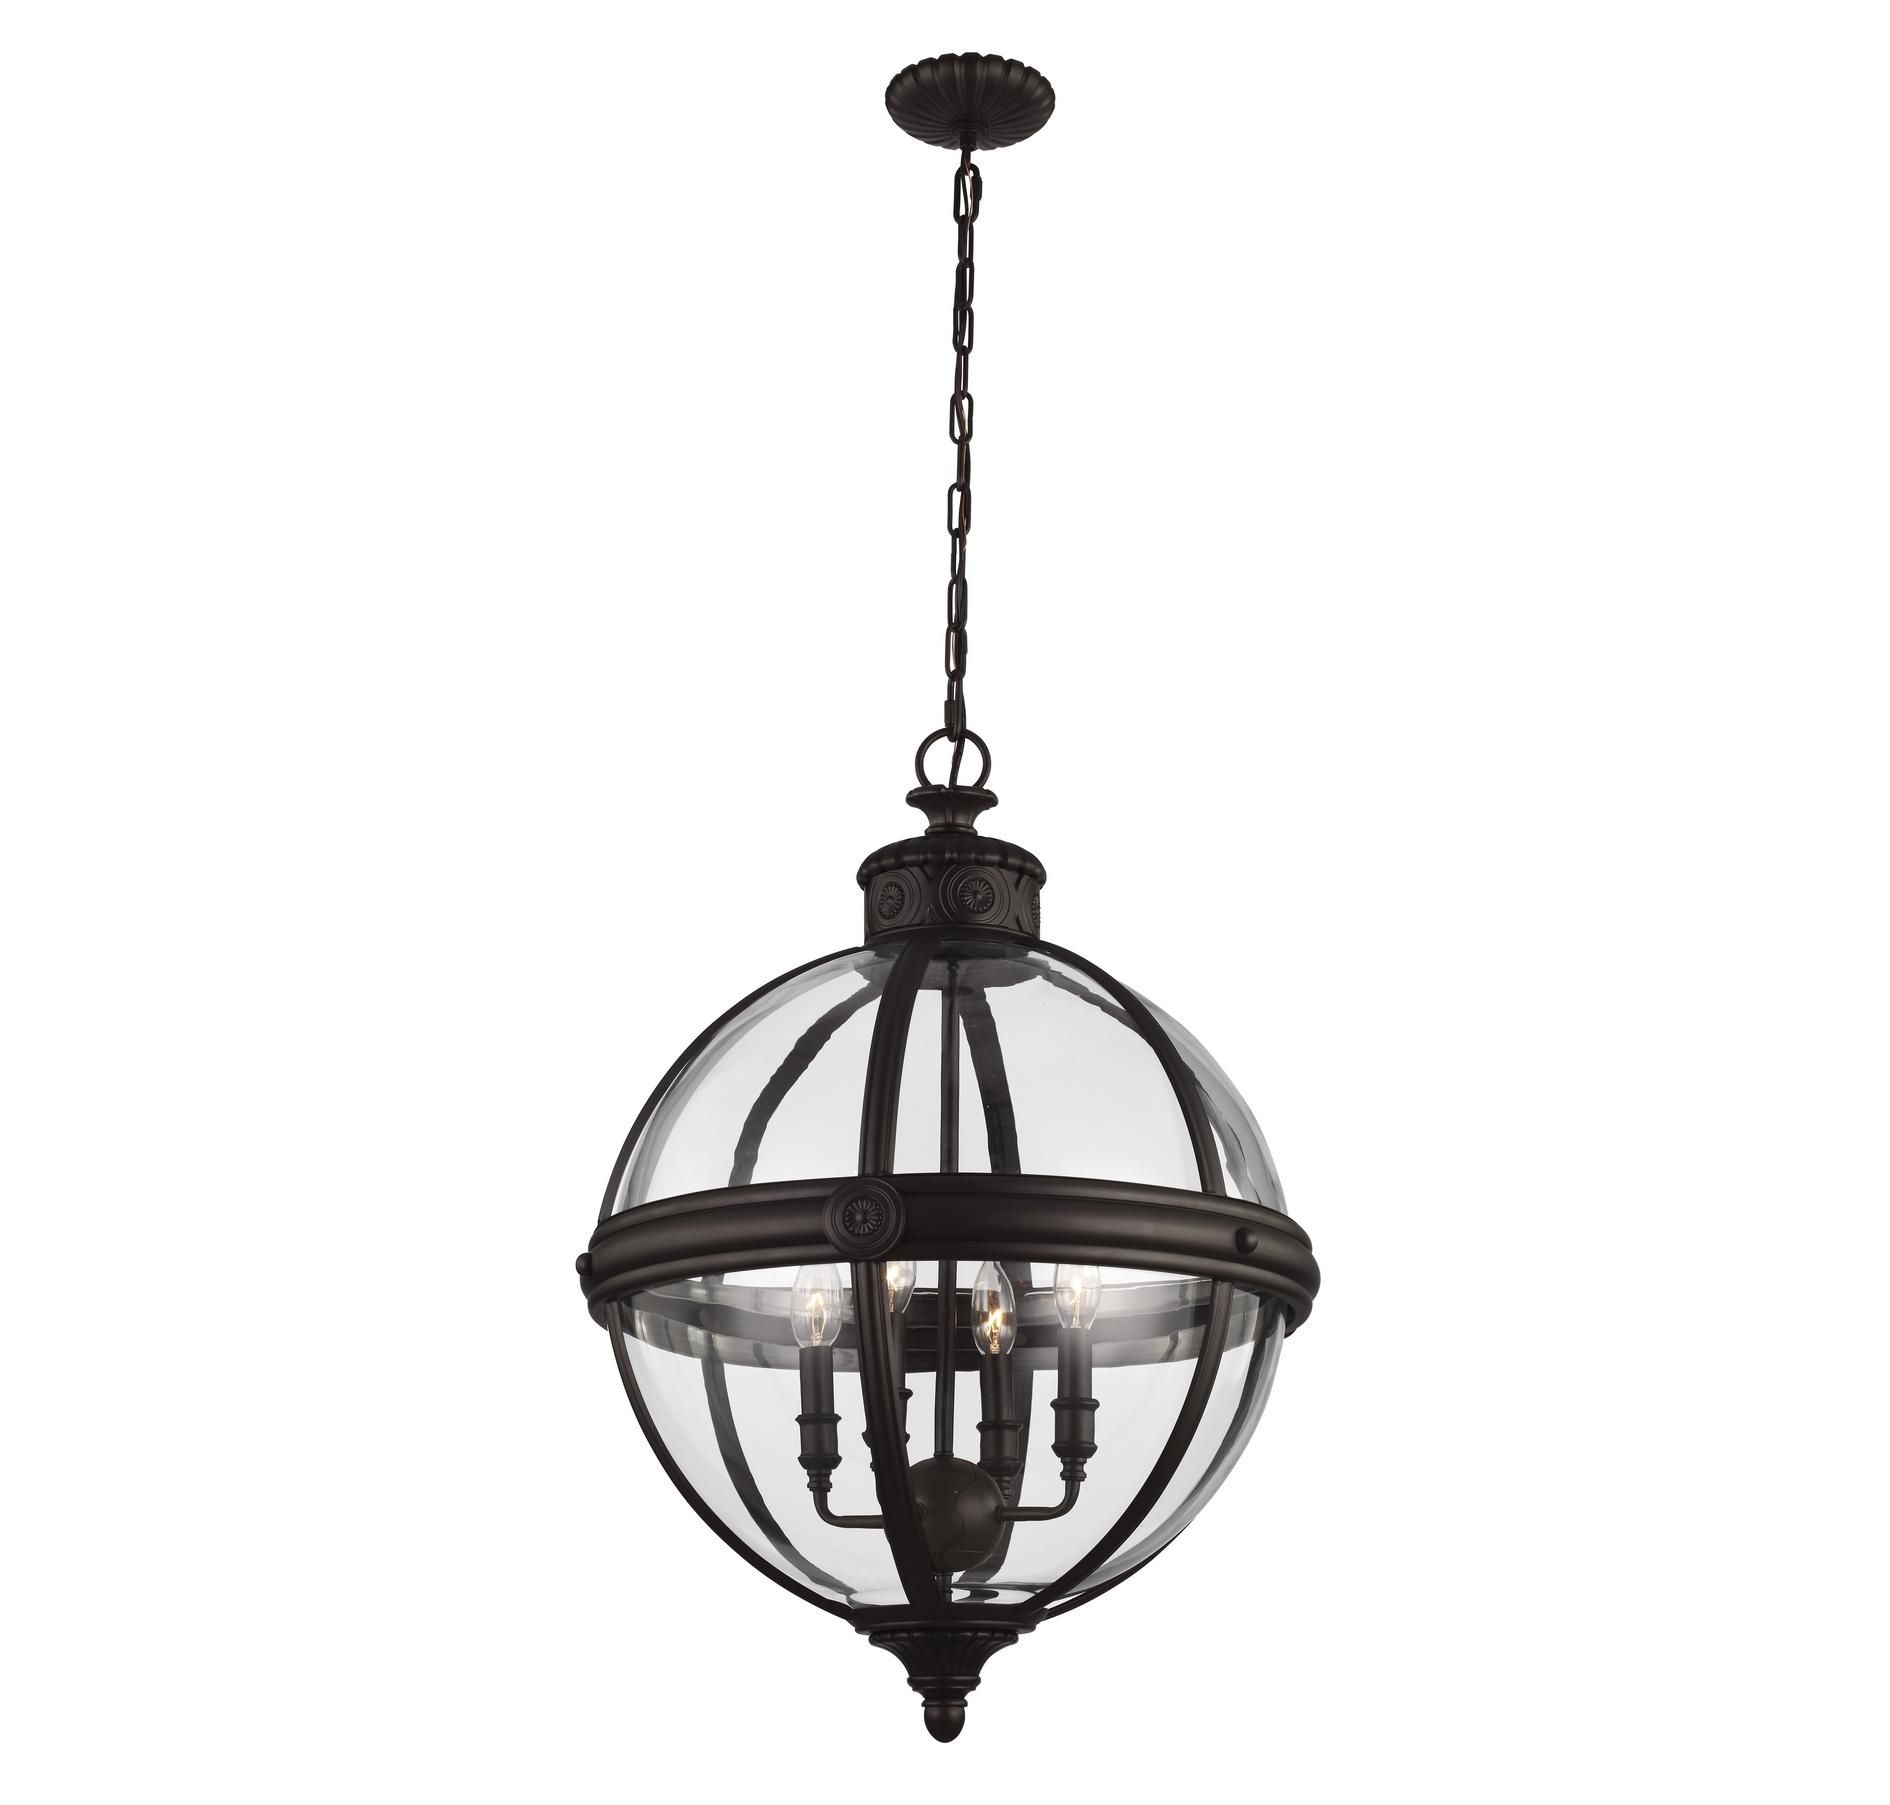 Feiss Adams 4-Light Oil Rubbed Bronze Large Pendant in Wall Lights, Wall Sconces, Shop Wall Sconces: LeeLighting.com